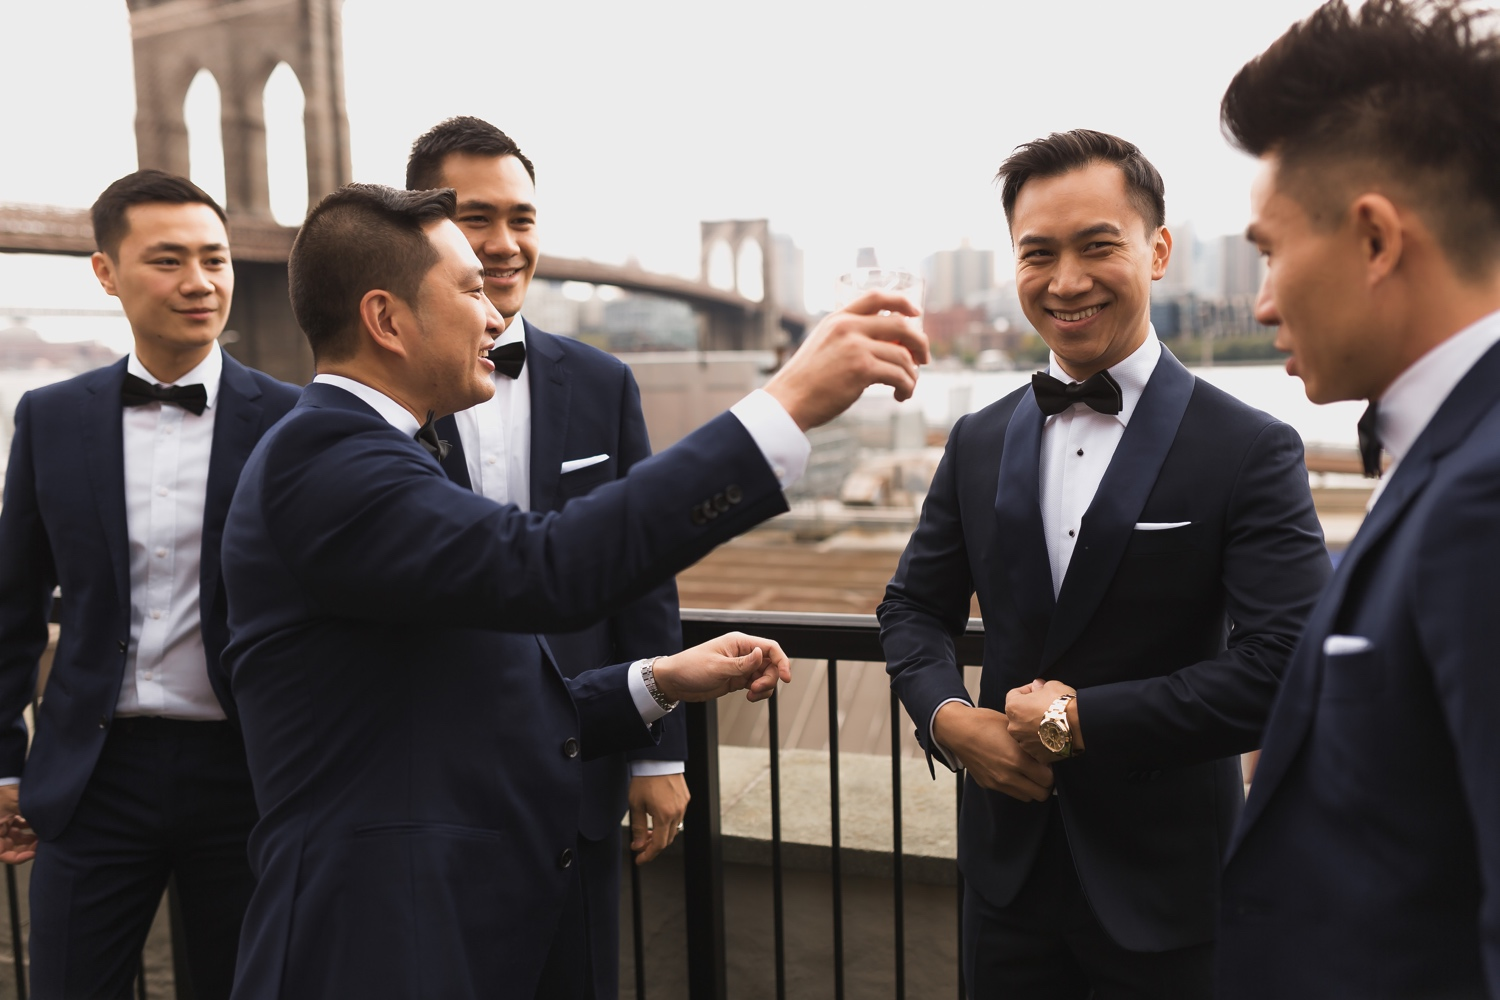 A groom and his groomsmen getting ready in a Mr. C Seaport Hotel for his wedding at Cipriani Wall Street in New York City.